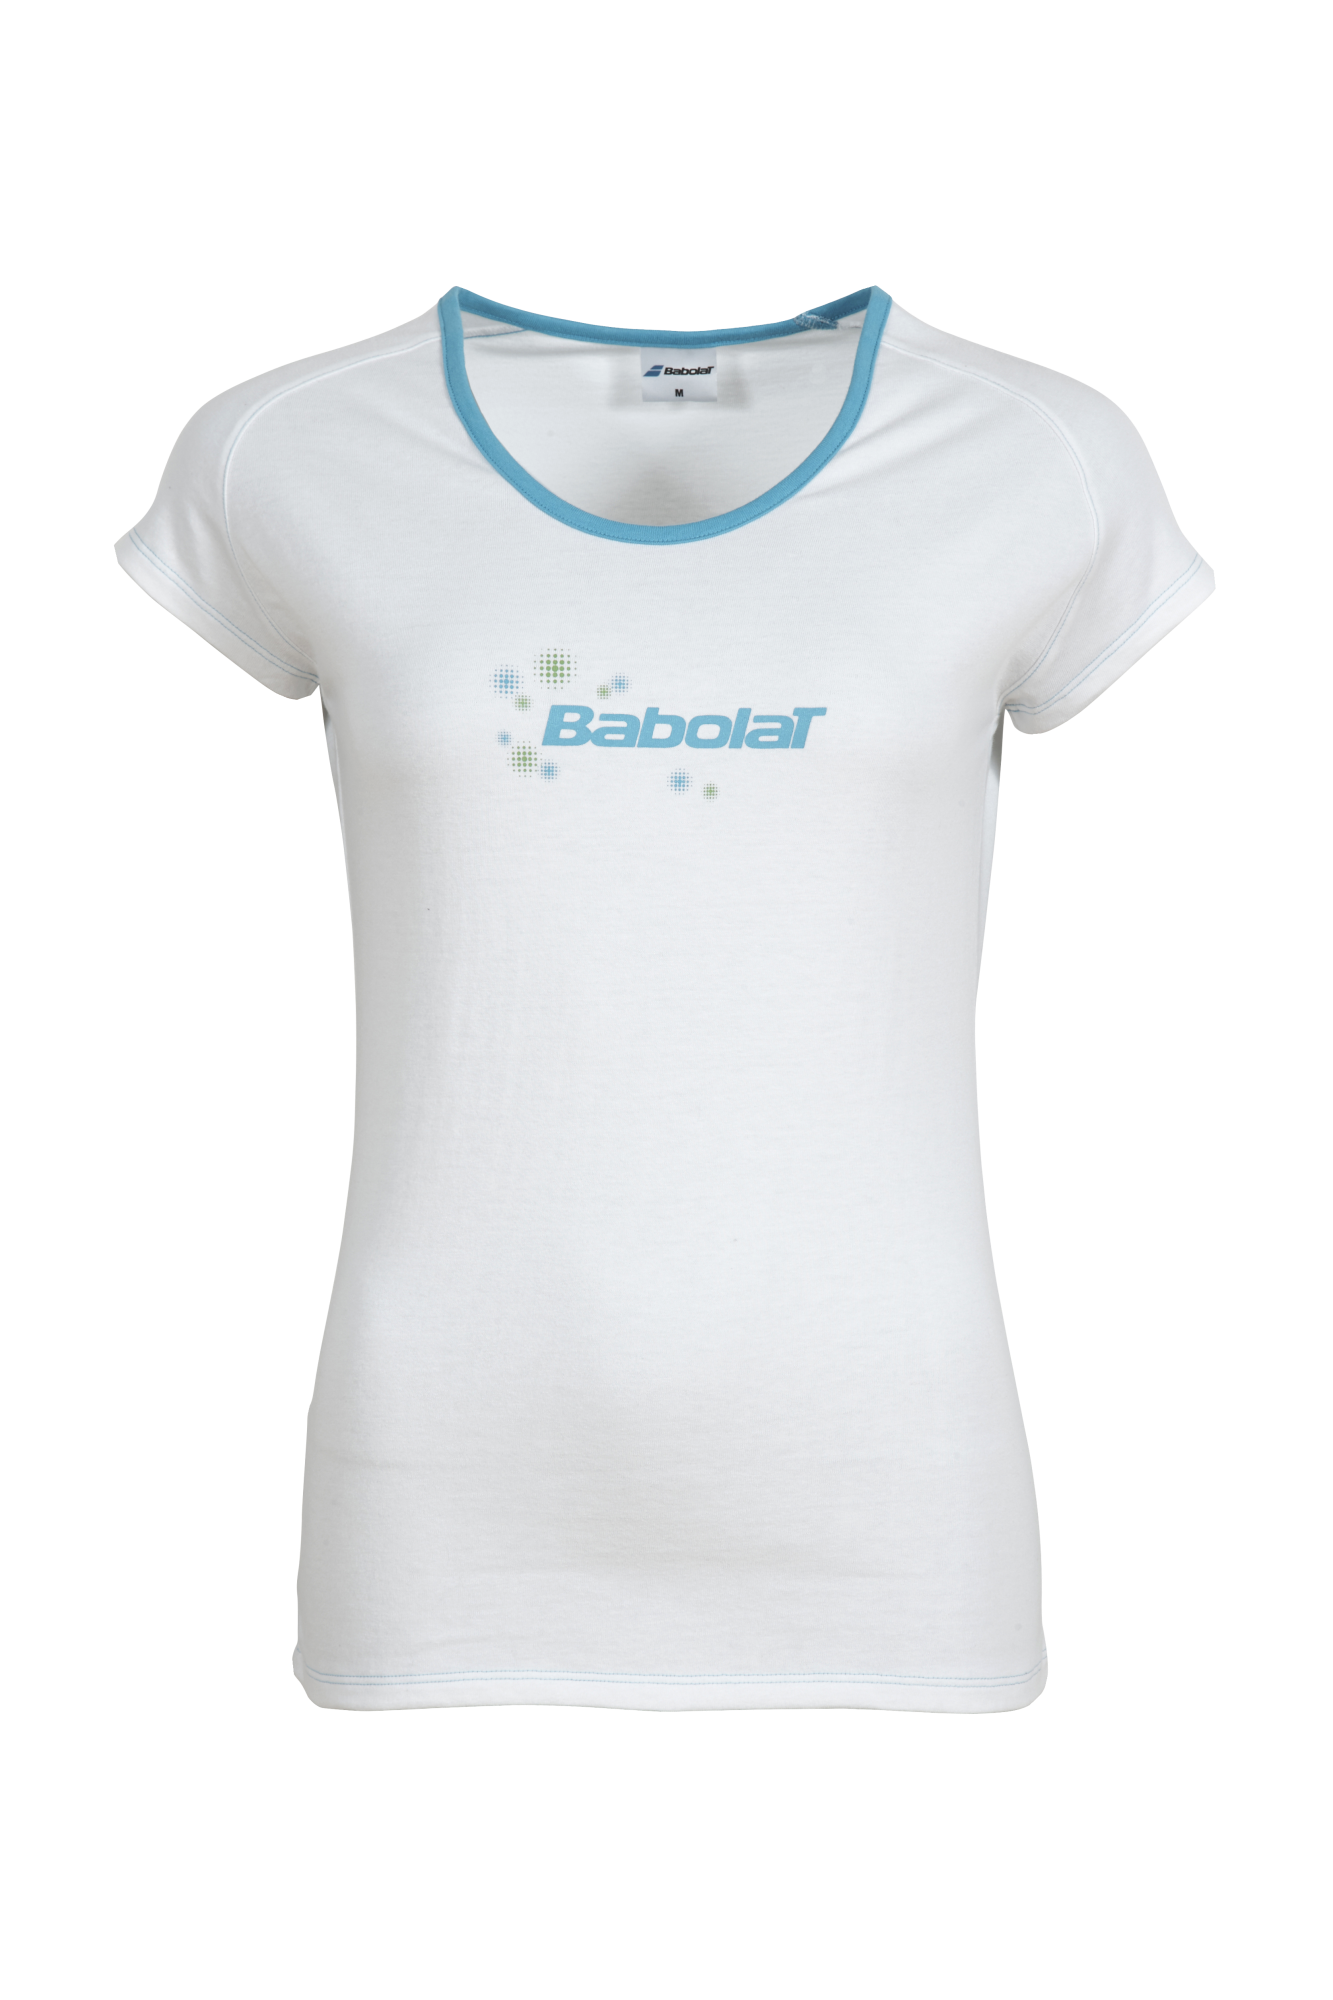 Babolat T-Shirt Girl Training Basic White 2015 164